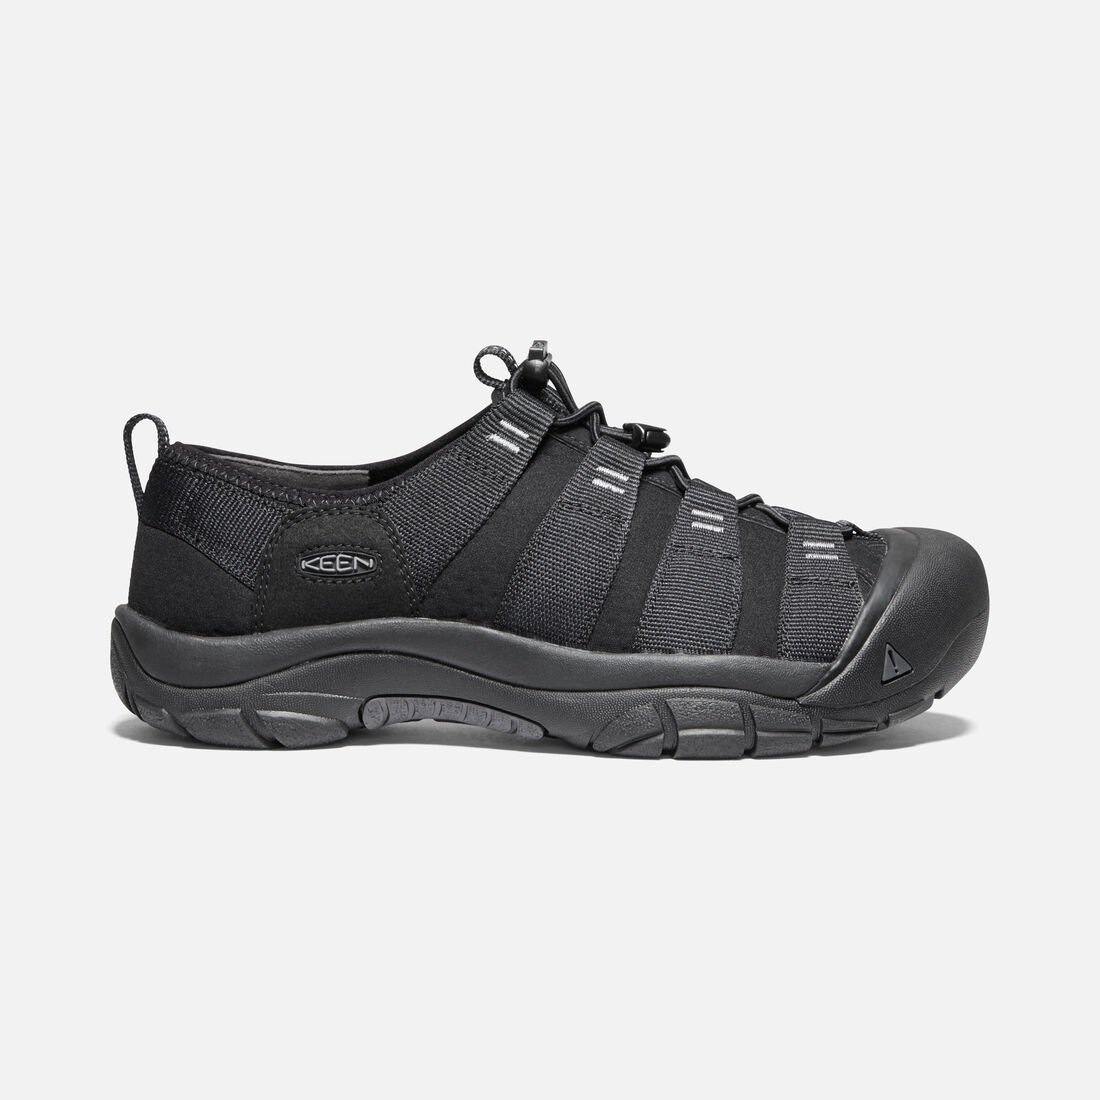 Men's Riverport in BLACK/BLACK - large view.